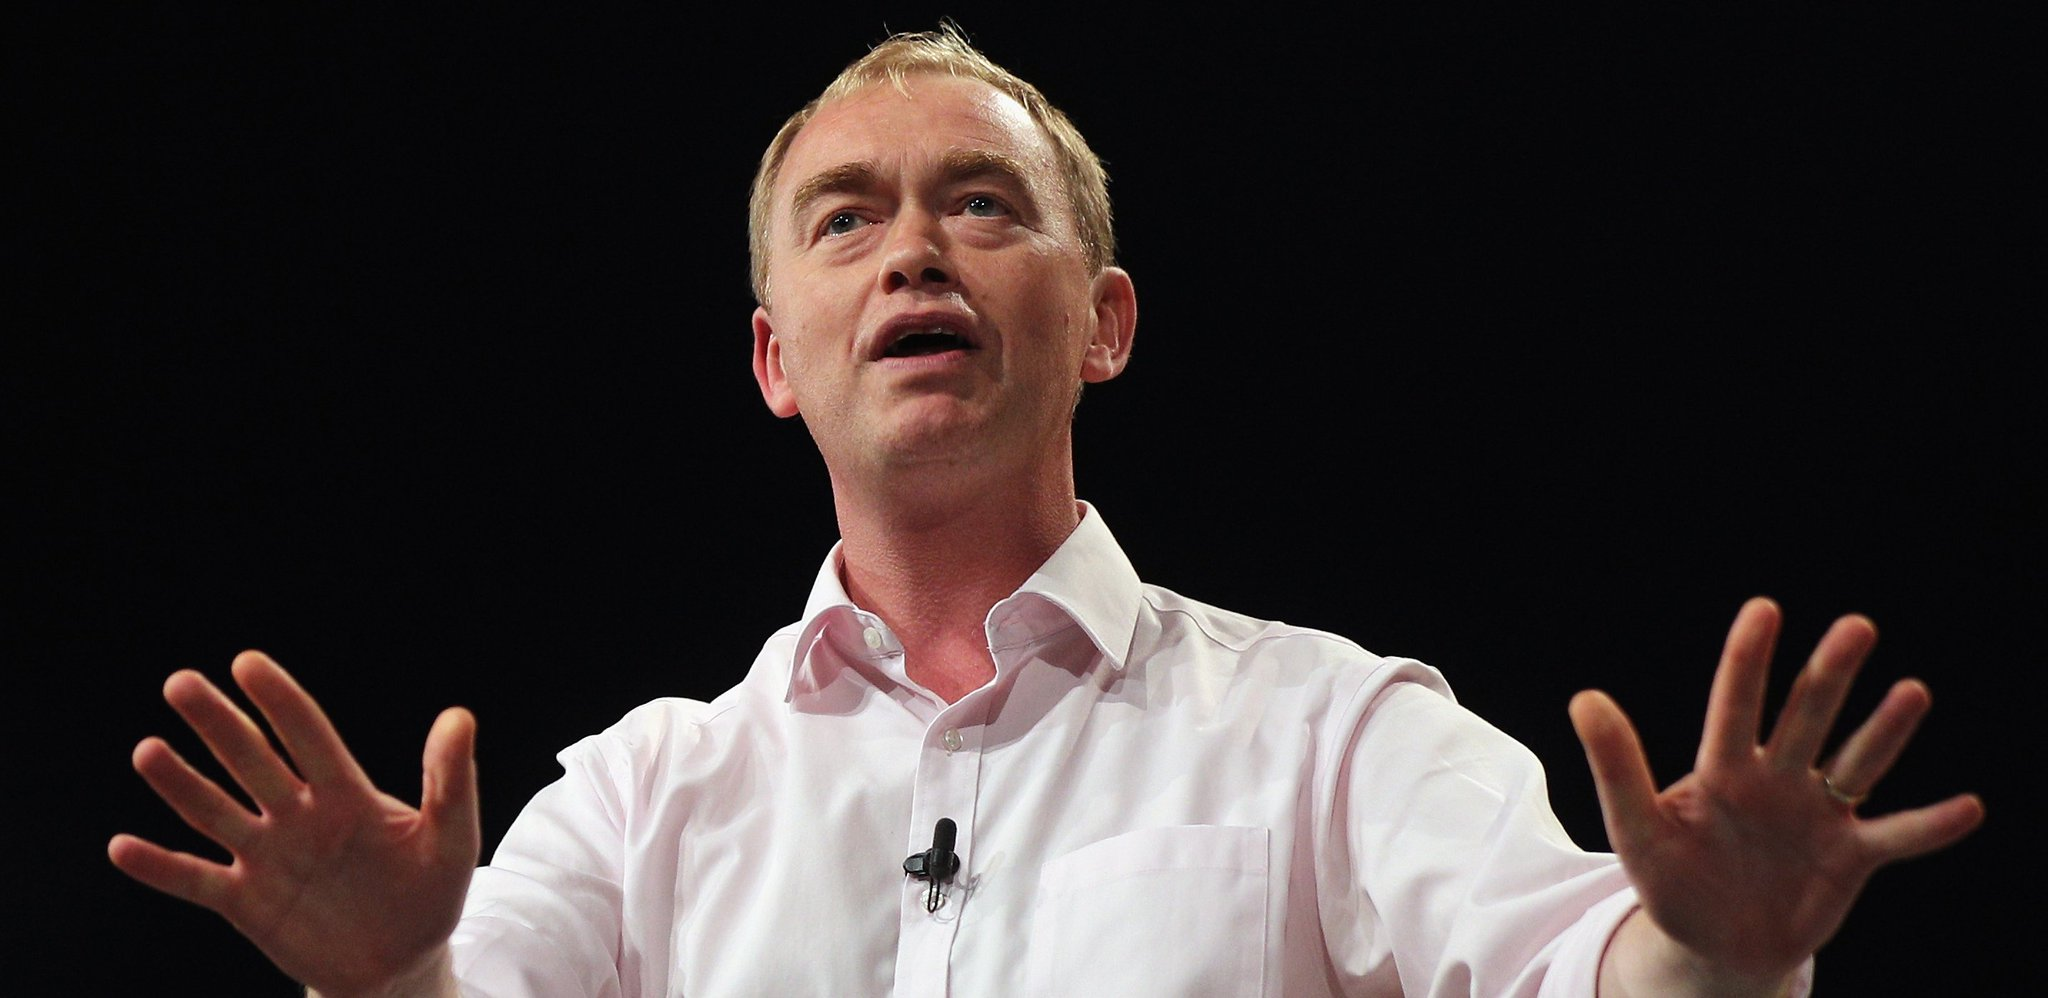 Tim Farron announces he's standing down as leader of the Liberal Democrats https://t.co/ttikxOl9Uz https://t.co/DA2FcH034x